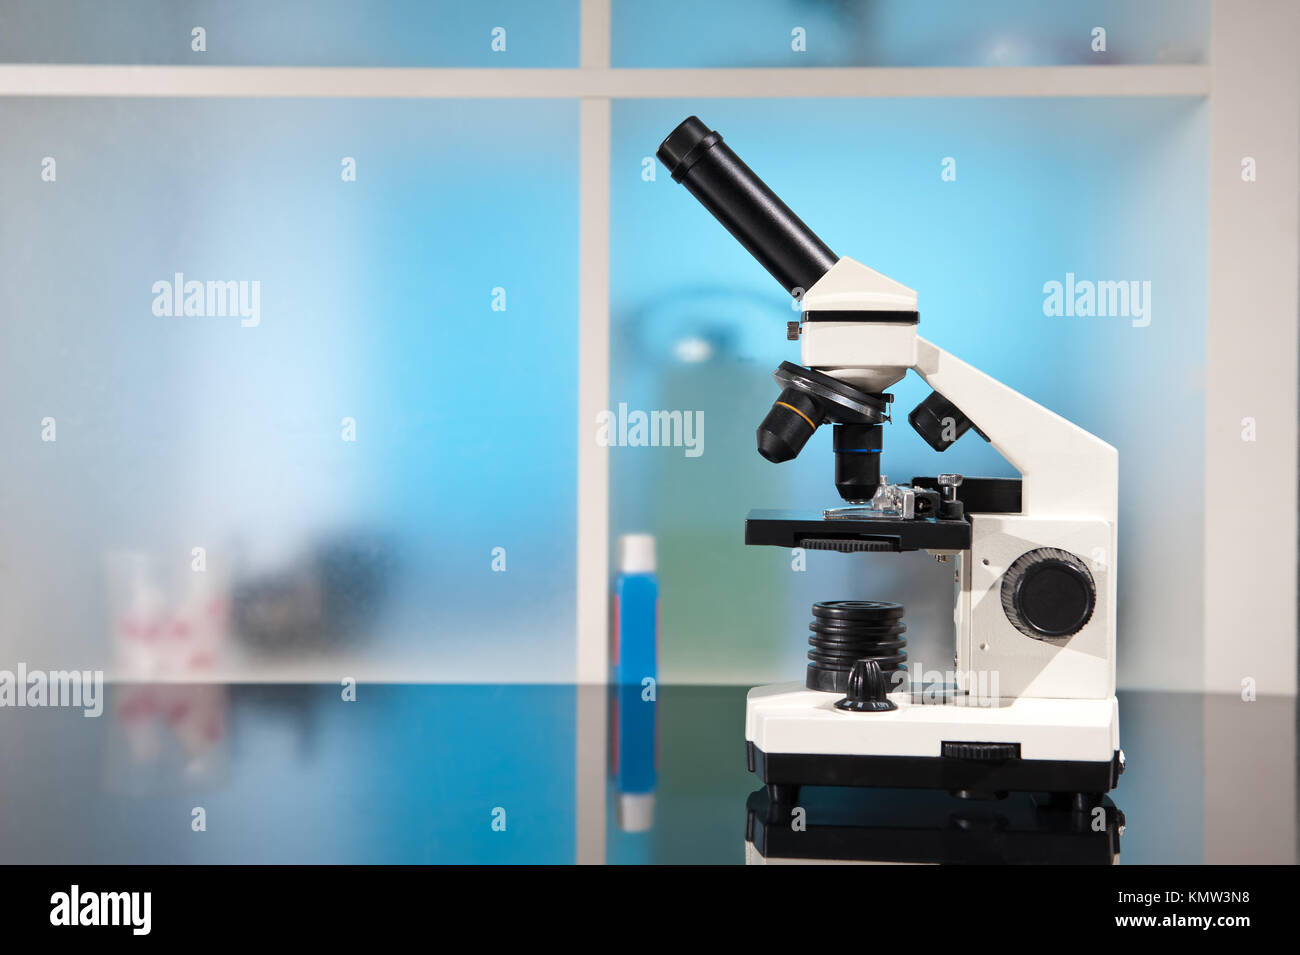 Entry level microscope, copy space - Stock Image